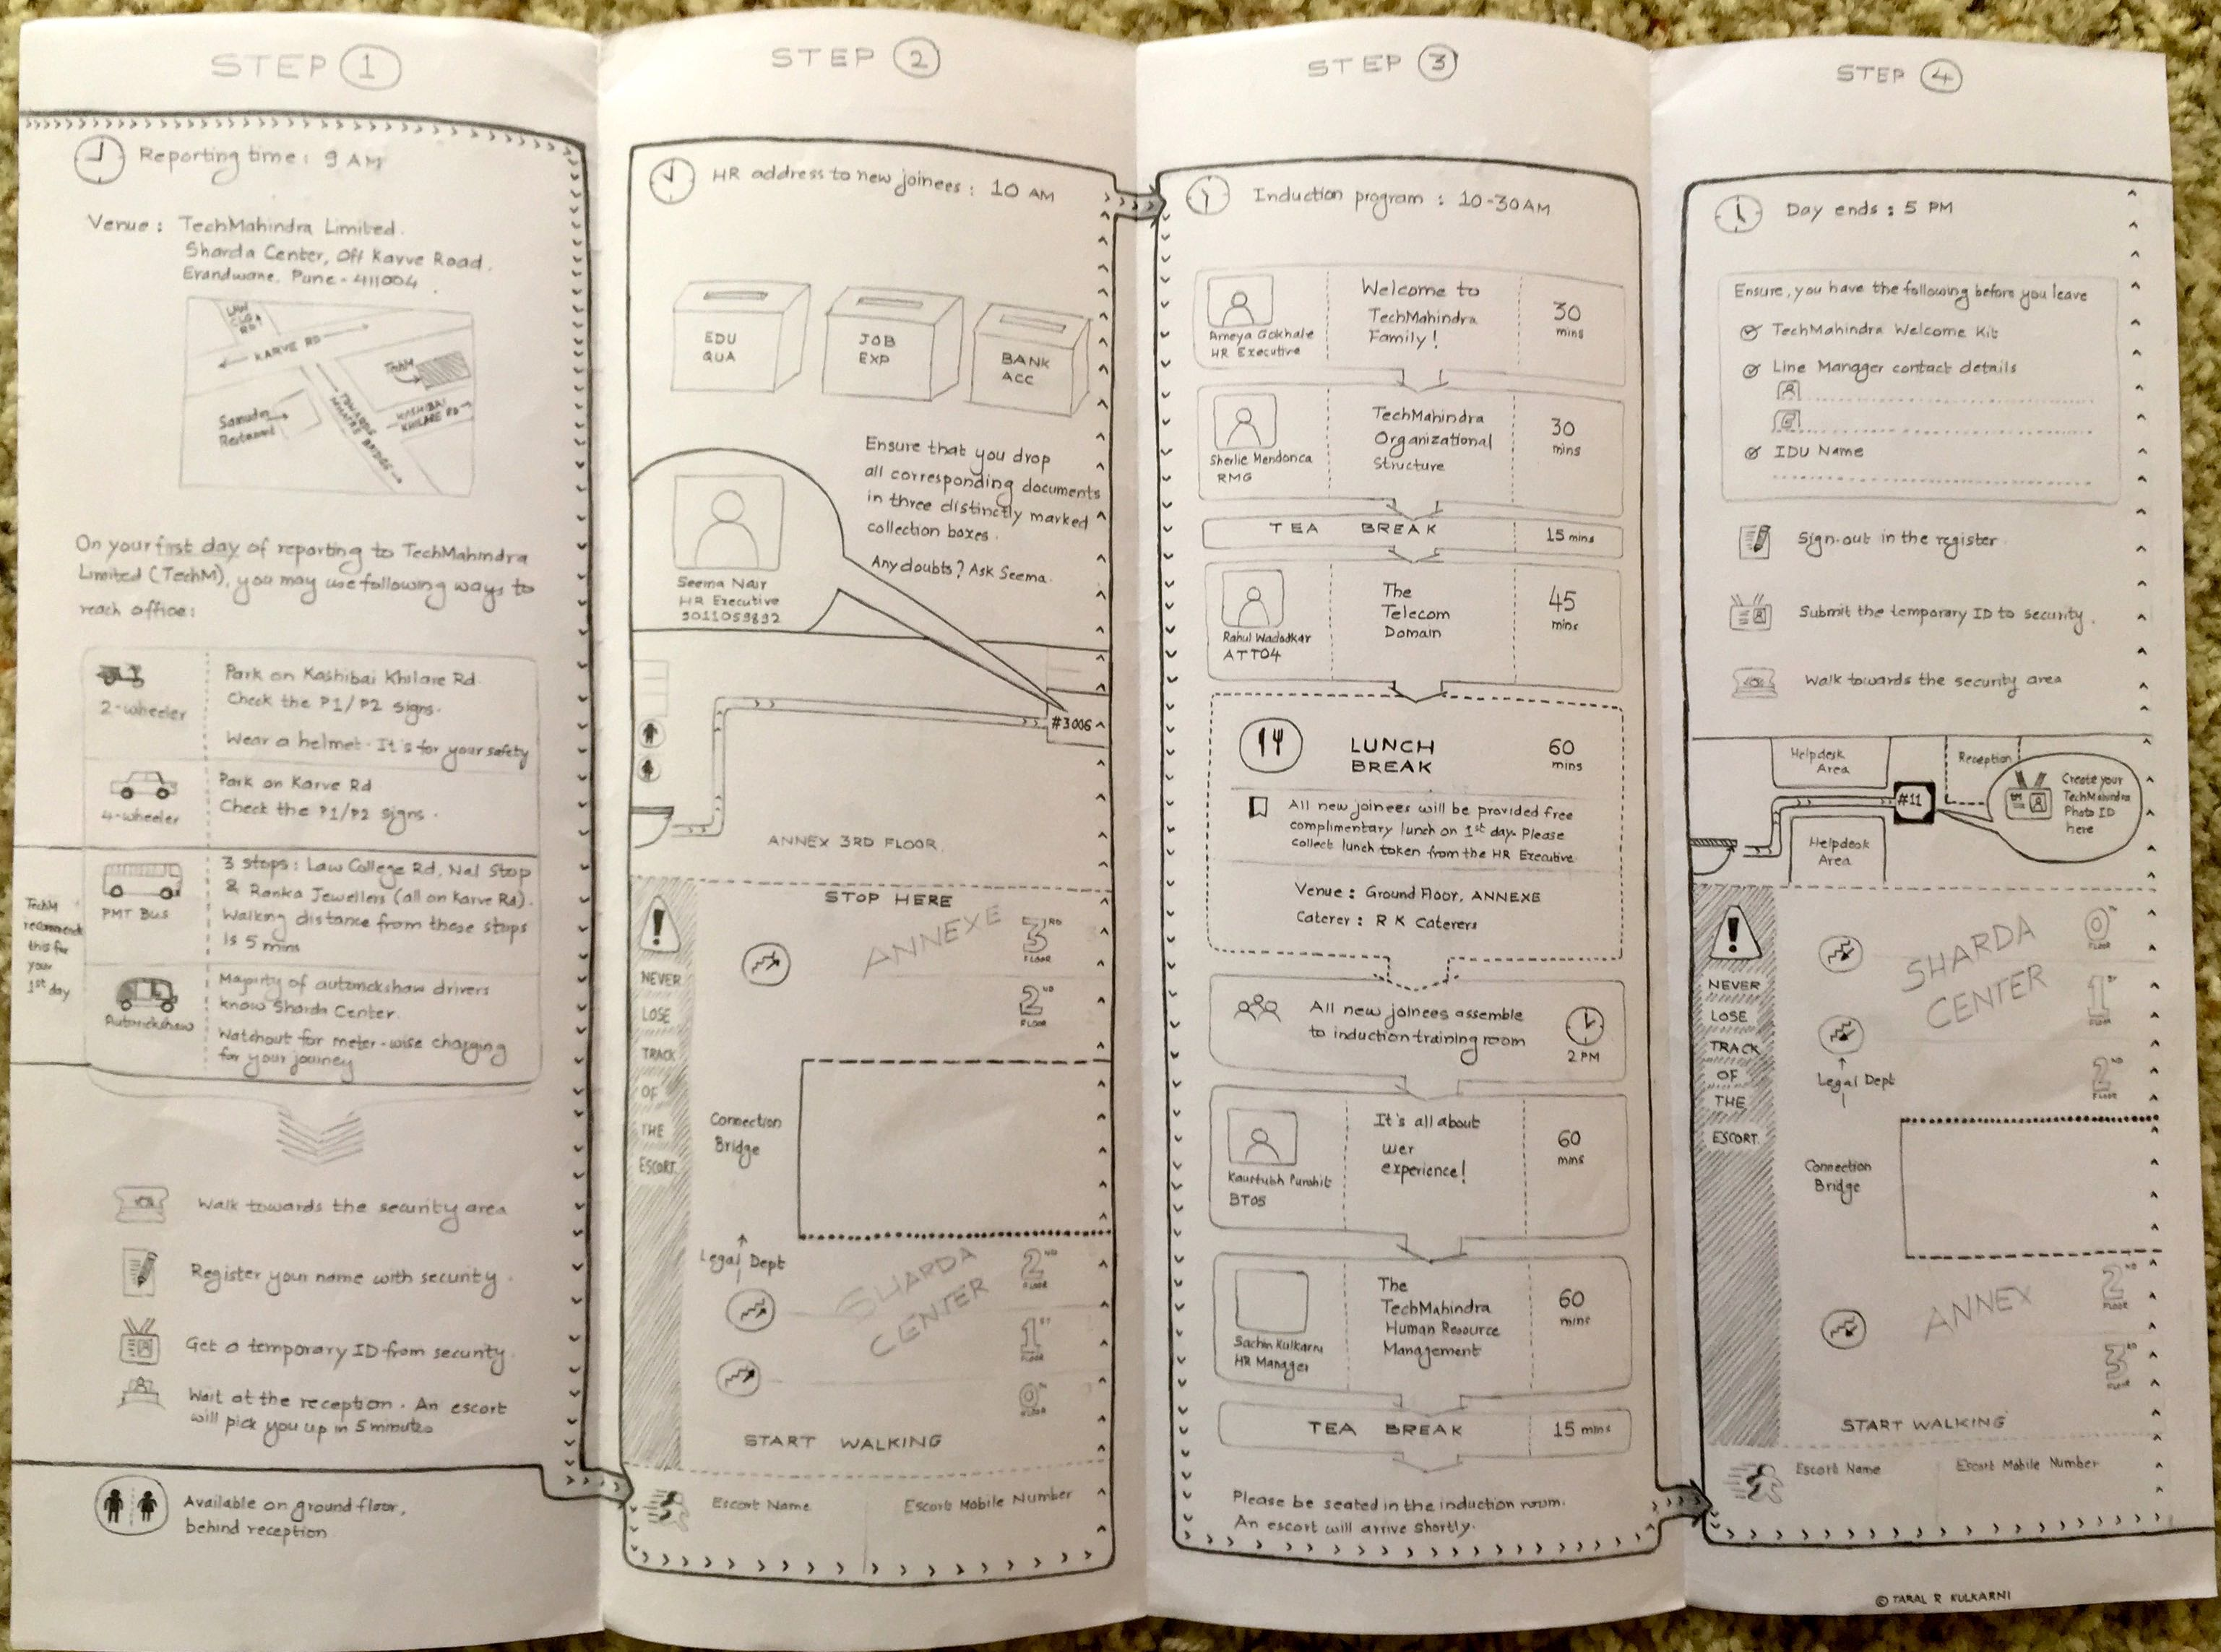 Third Fold of the Infographic Brochure